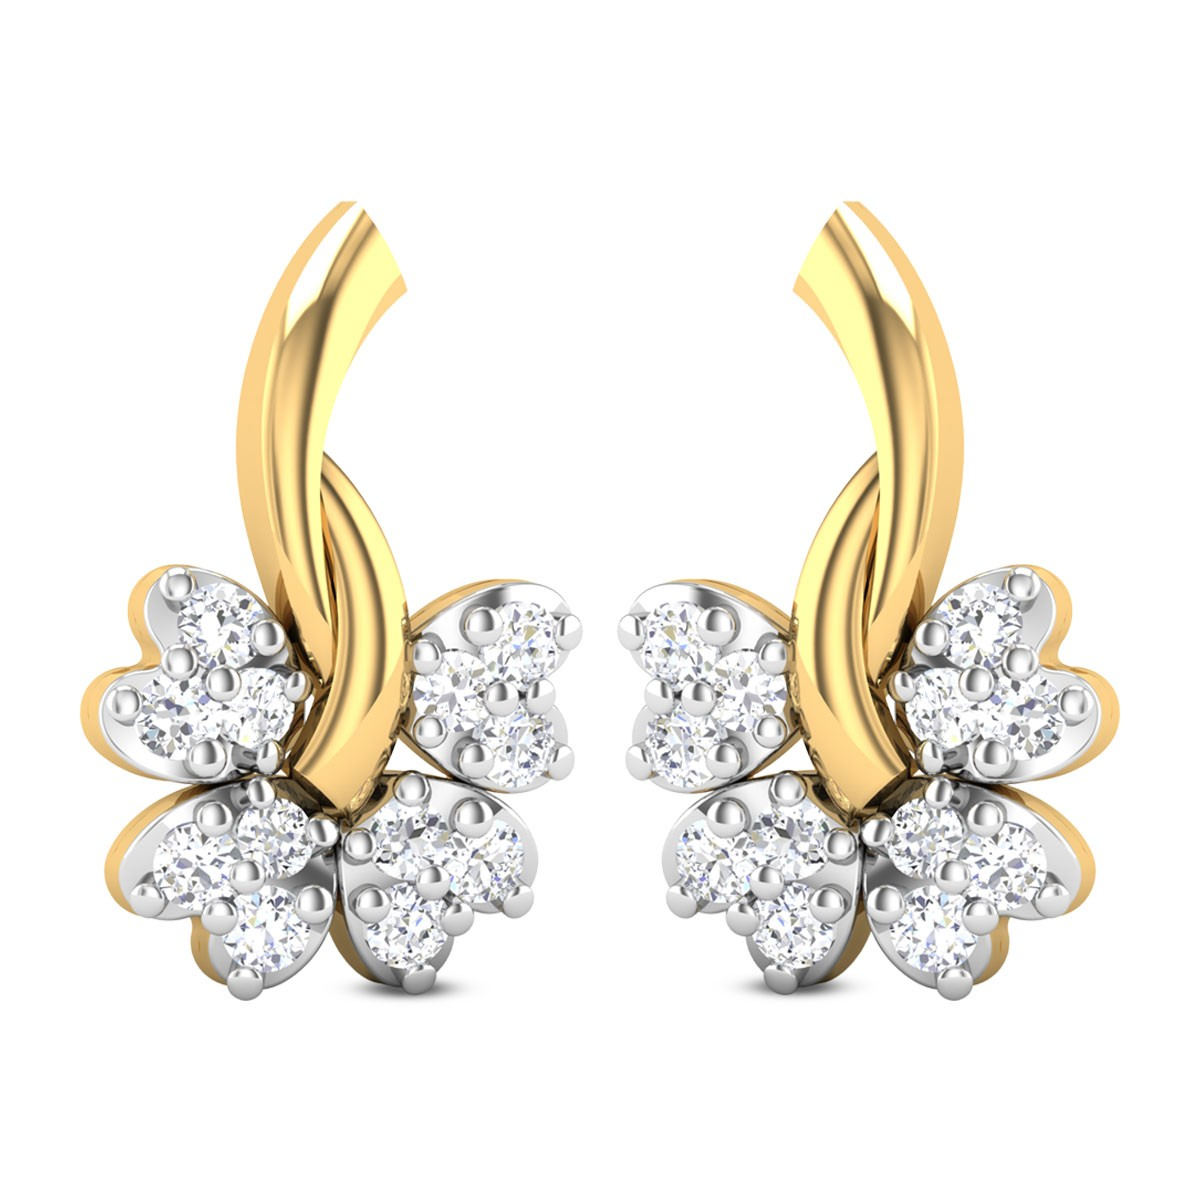 Raha Diamond Earrings